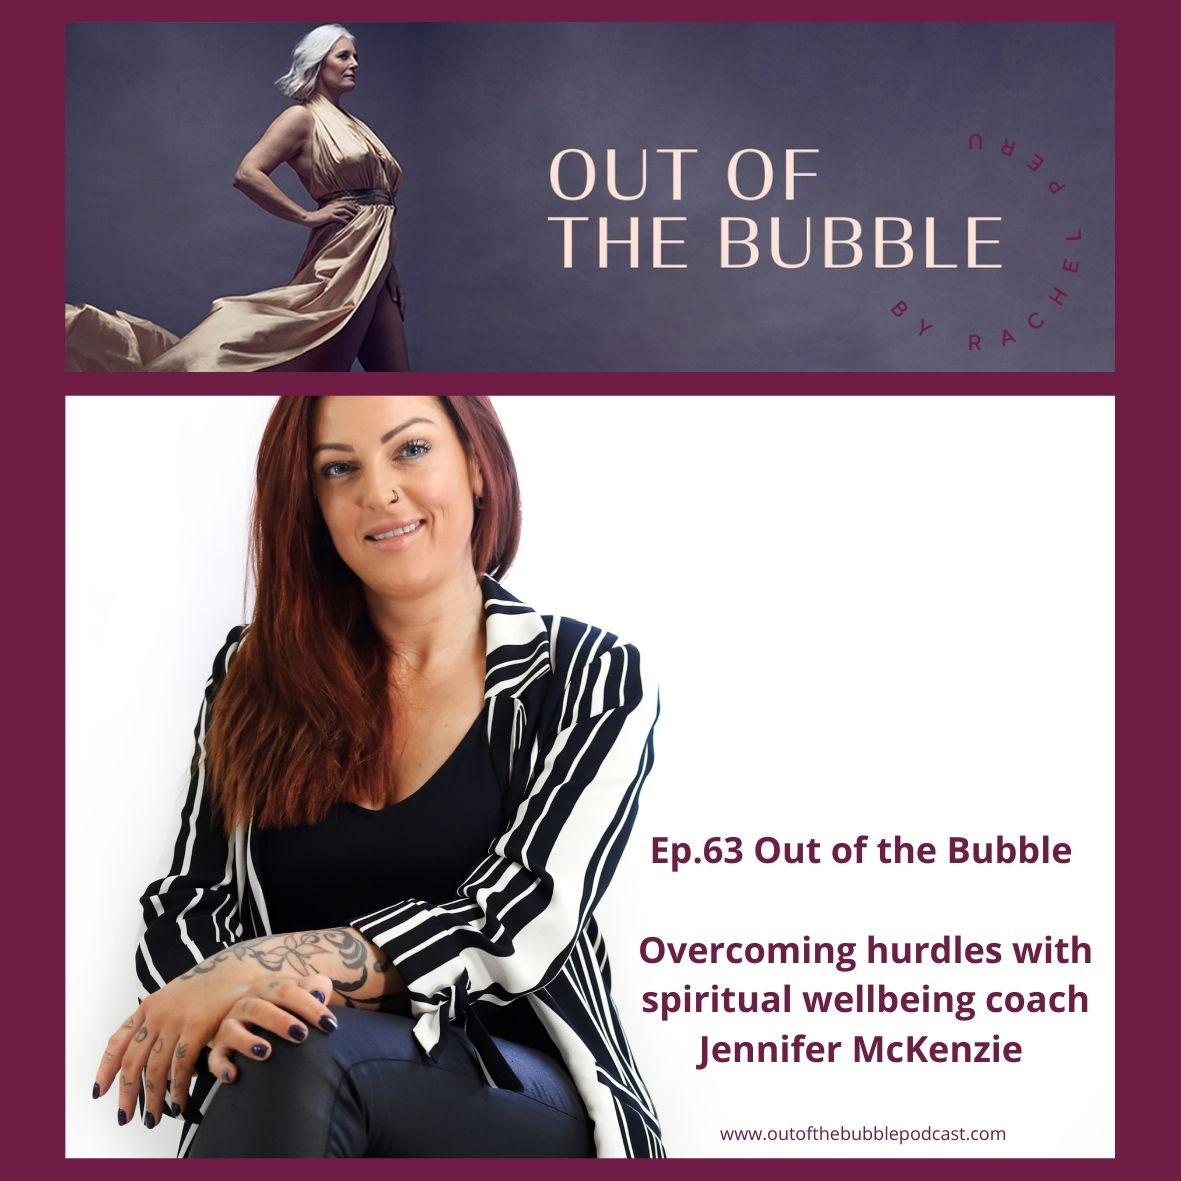 Ep.63-Out of the Bubble with the conscious living coach Jennifer McKenzie